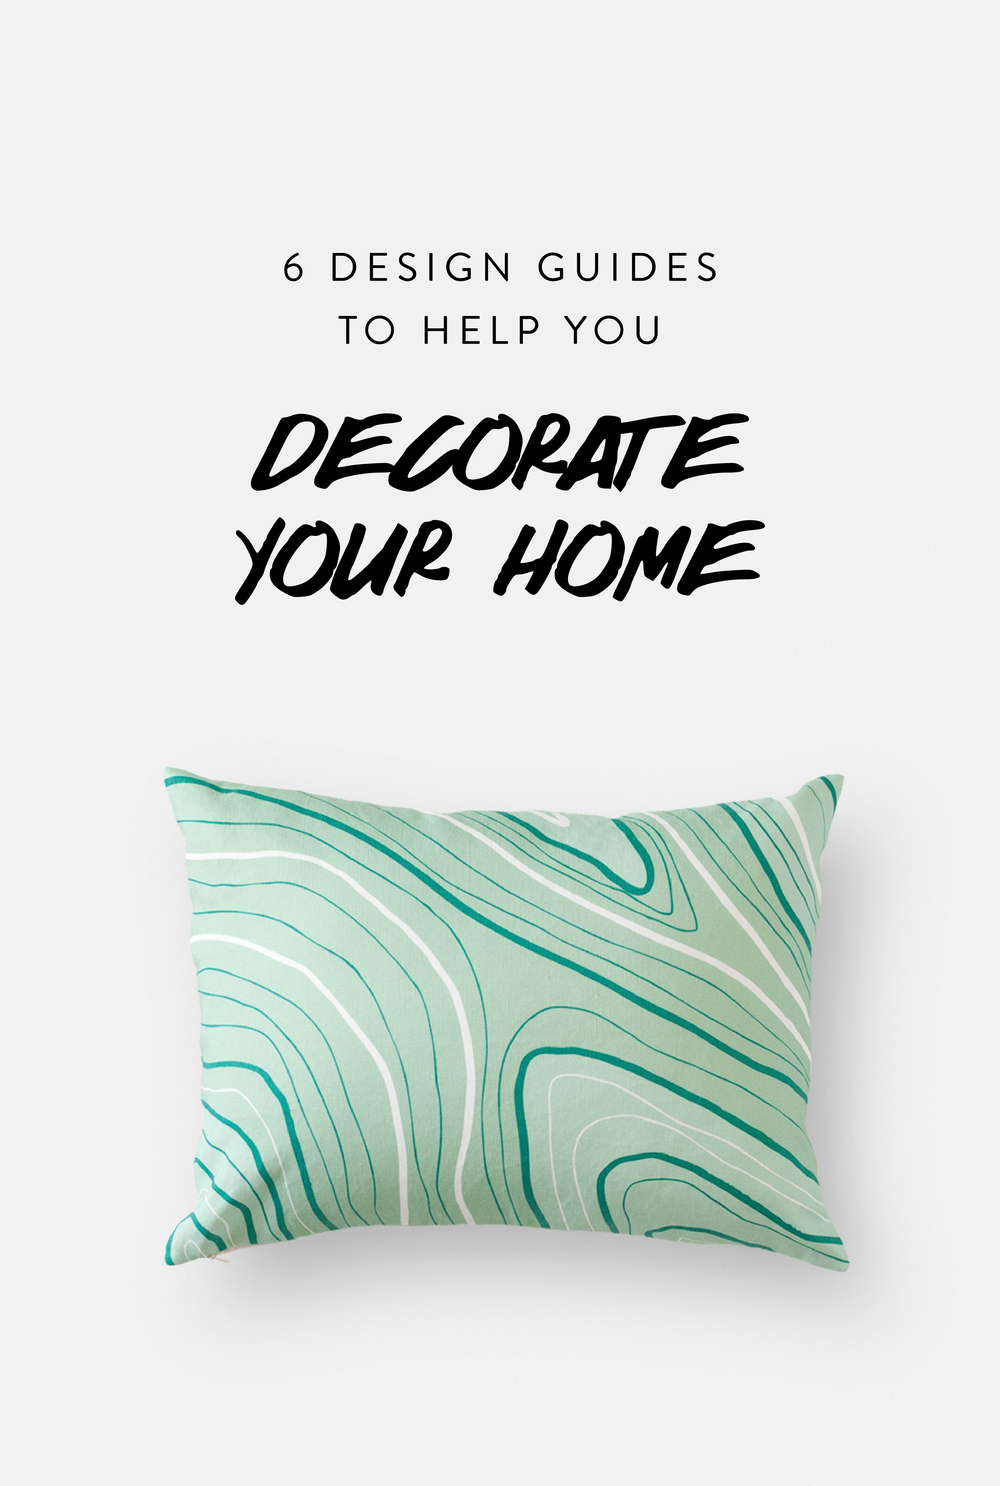 6 Design Guides To Help You Decorate Your Home